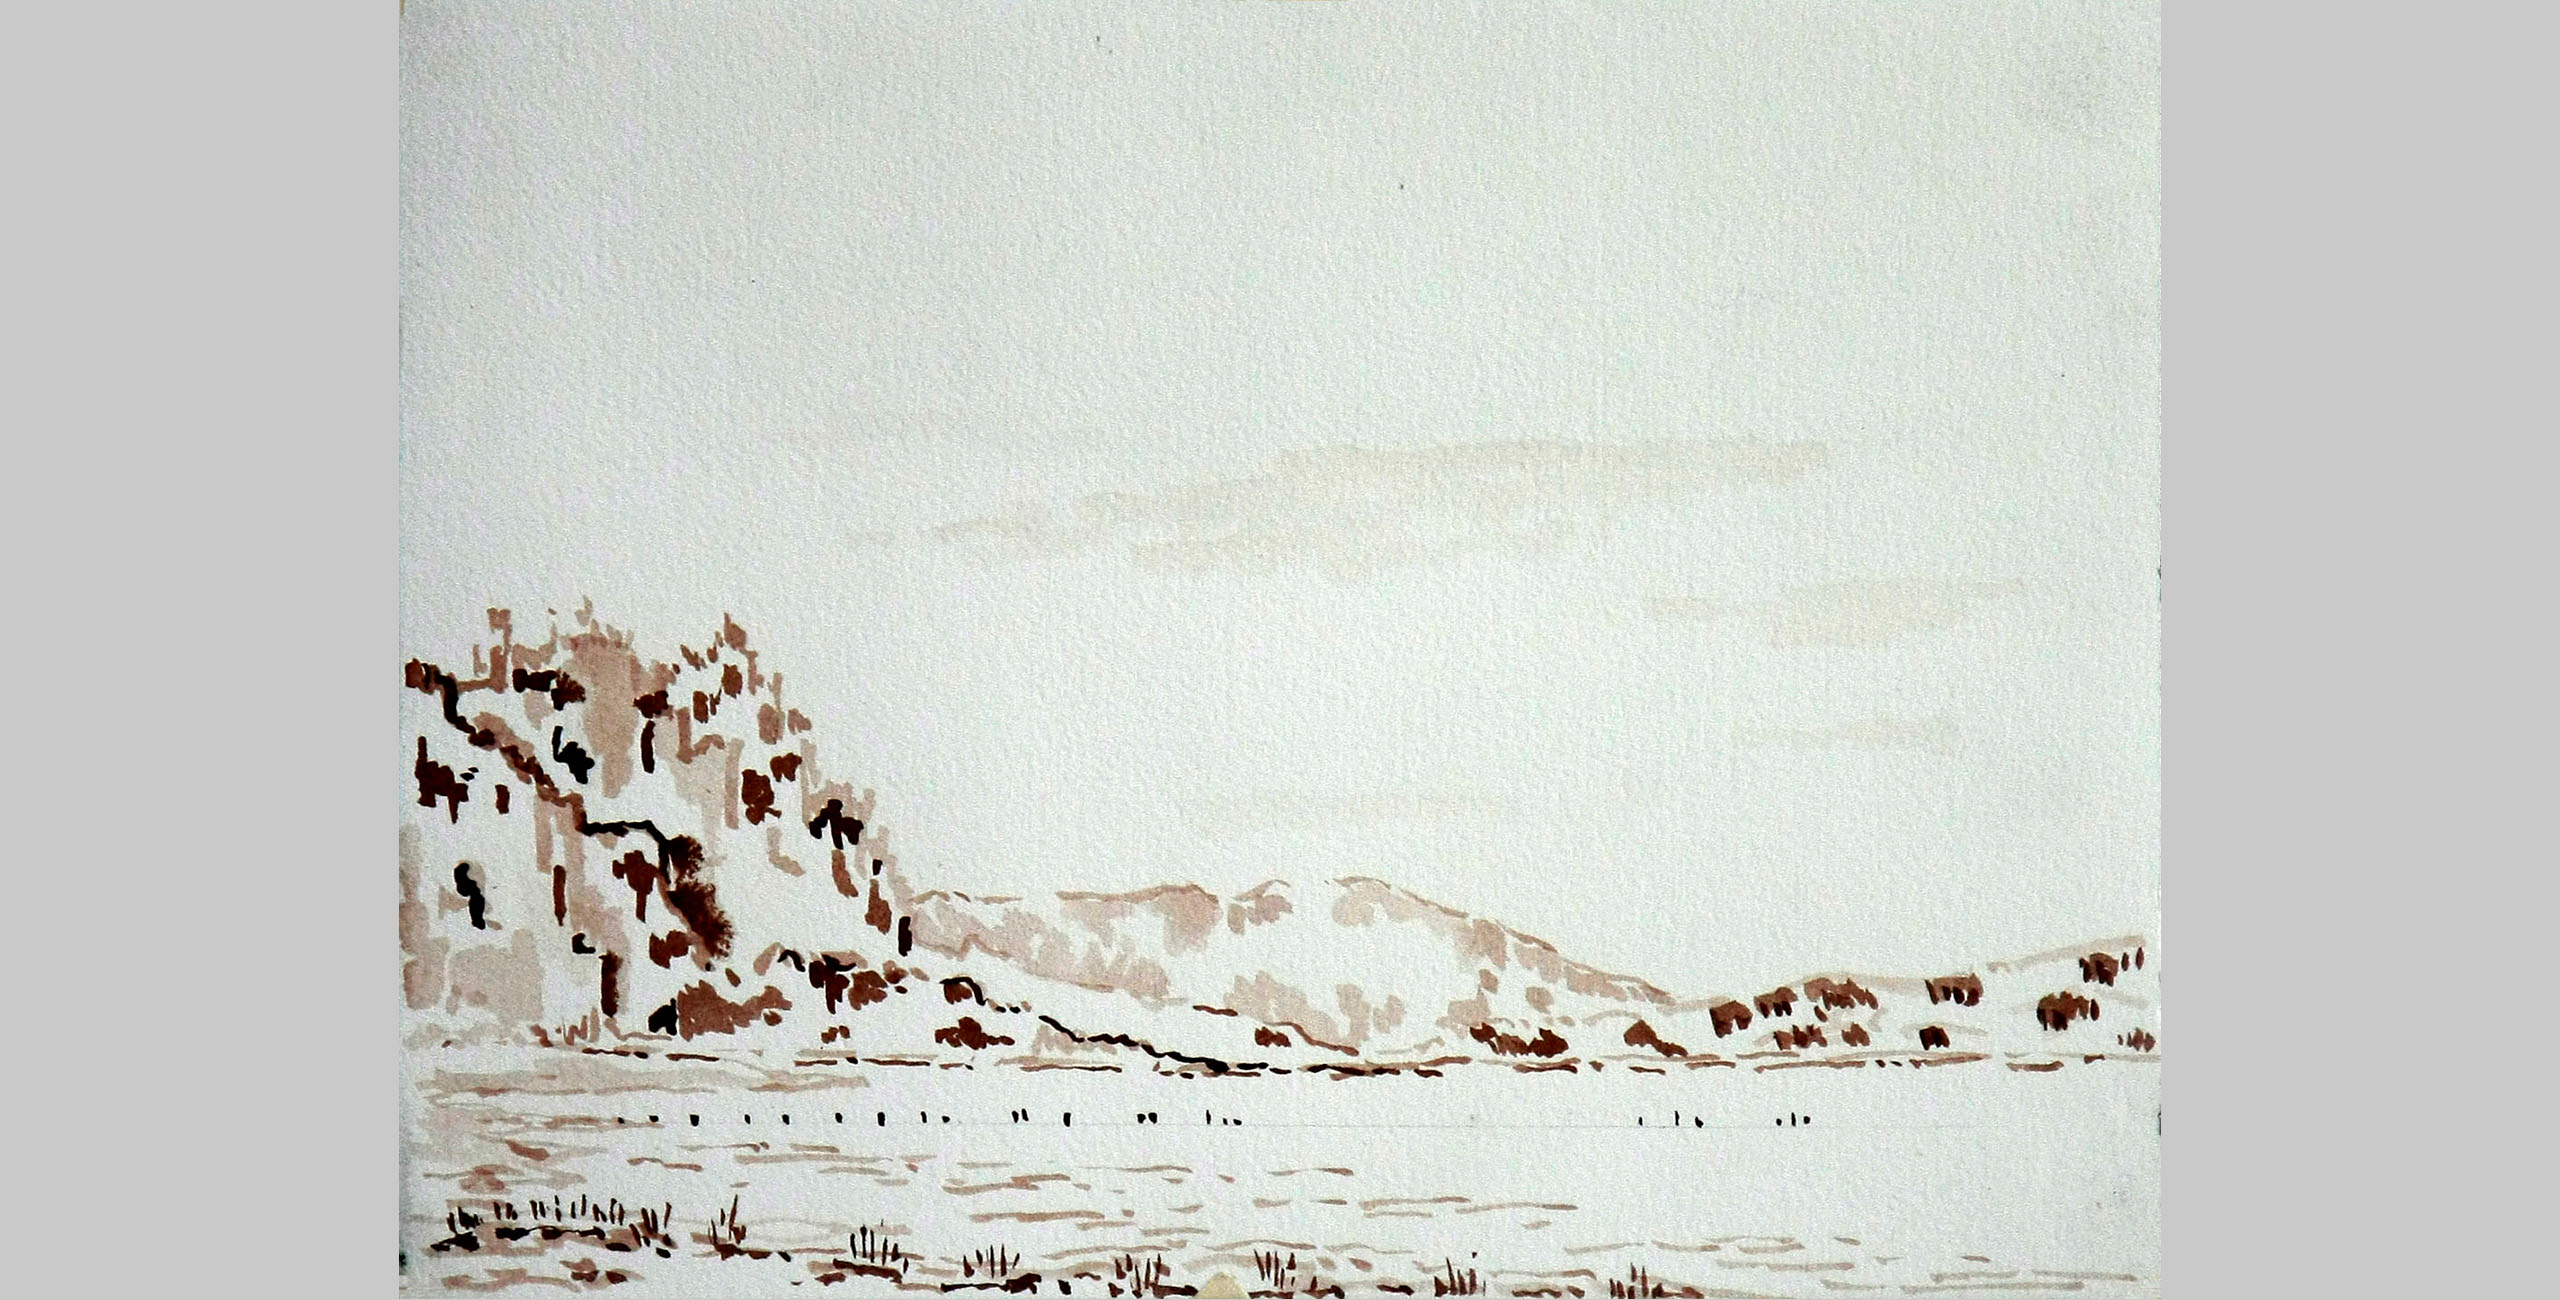 Landscape 2, 2011, pen and ink on paper